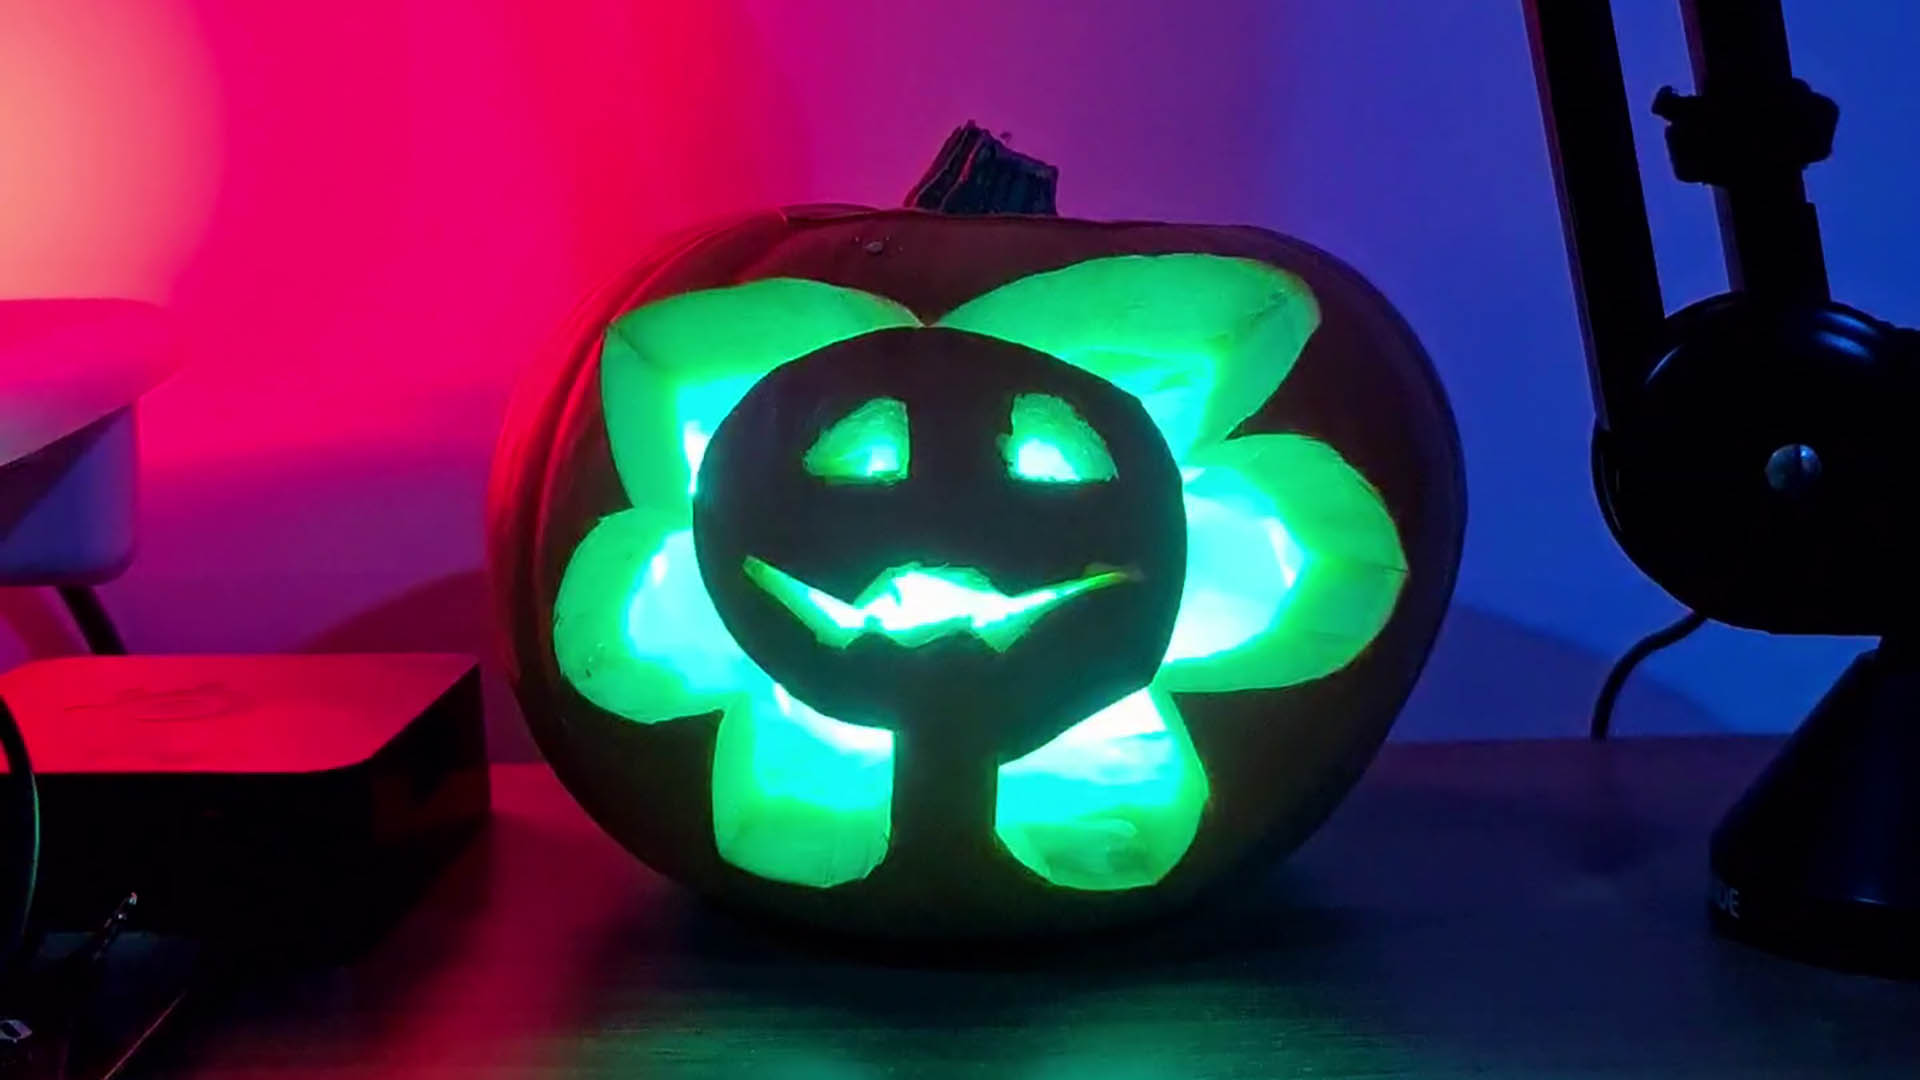 I beat Razer to the ultimate RGB pumpkin and almost burned down my apartment